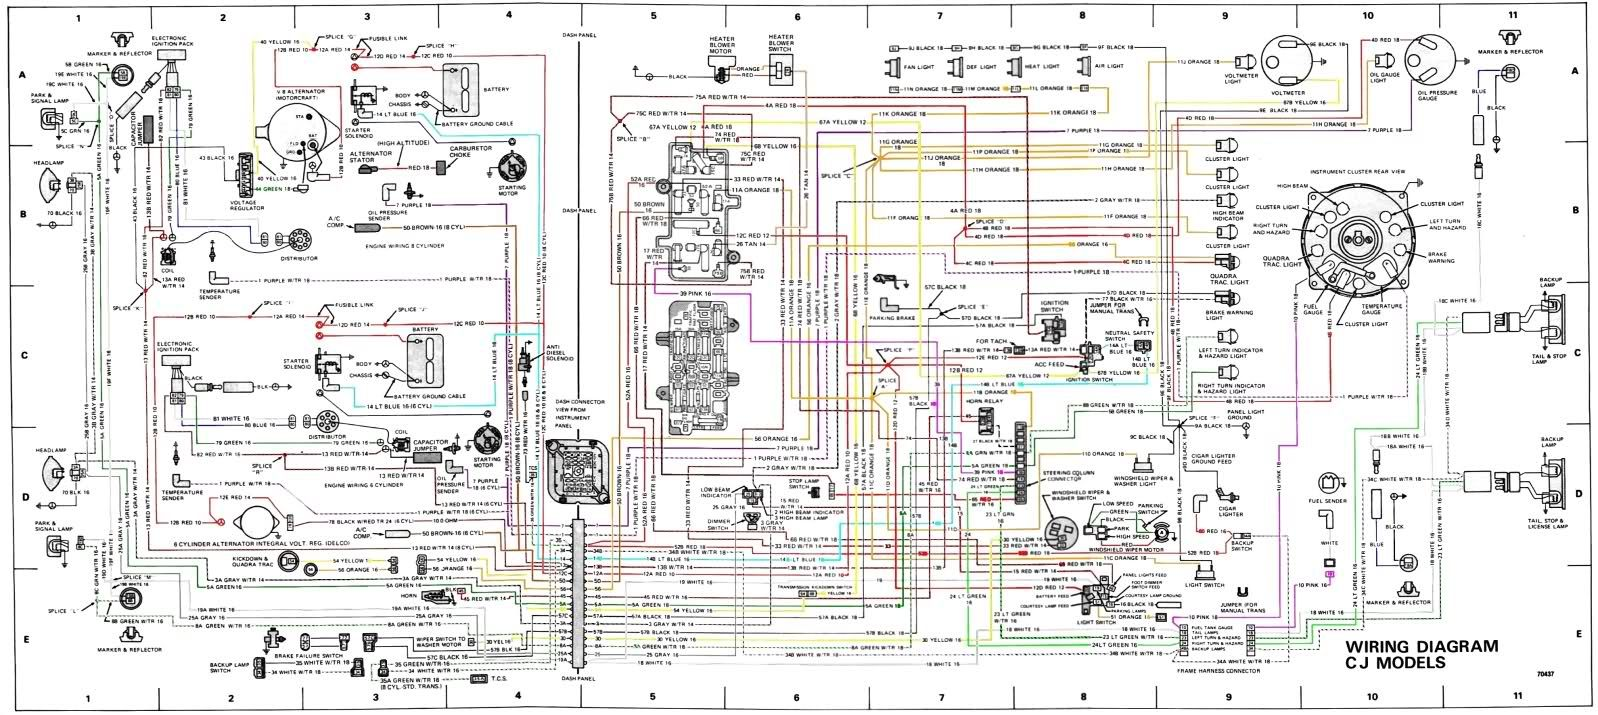 [DIAGRAM_5UK]  DIAGRAM] 1979 Jeep Cj7 Wiring Harness Diagram FULL Version HD Quality  Harness Diagram - MG50DFXSCHEMATIC4215.CONTRABBASSIVERDIANI.IT | 79 Jeep Cj5 Wiring Diagram |  | Contrabbassi di Simone e Damiano Verdiani